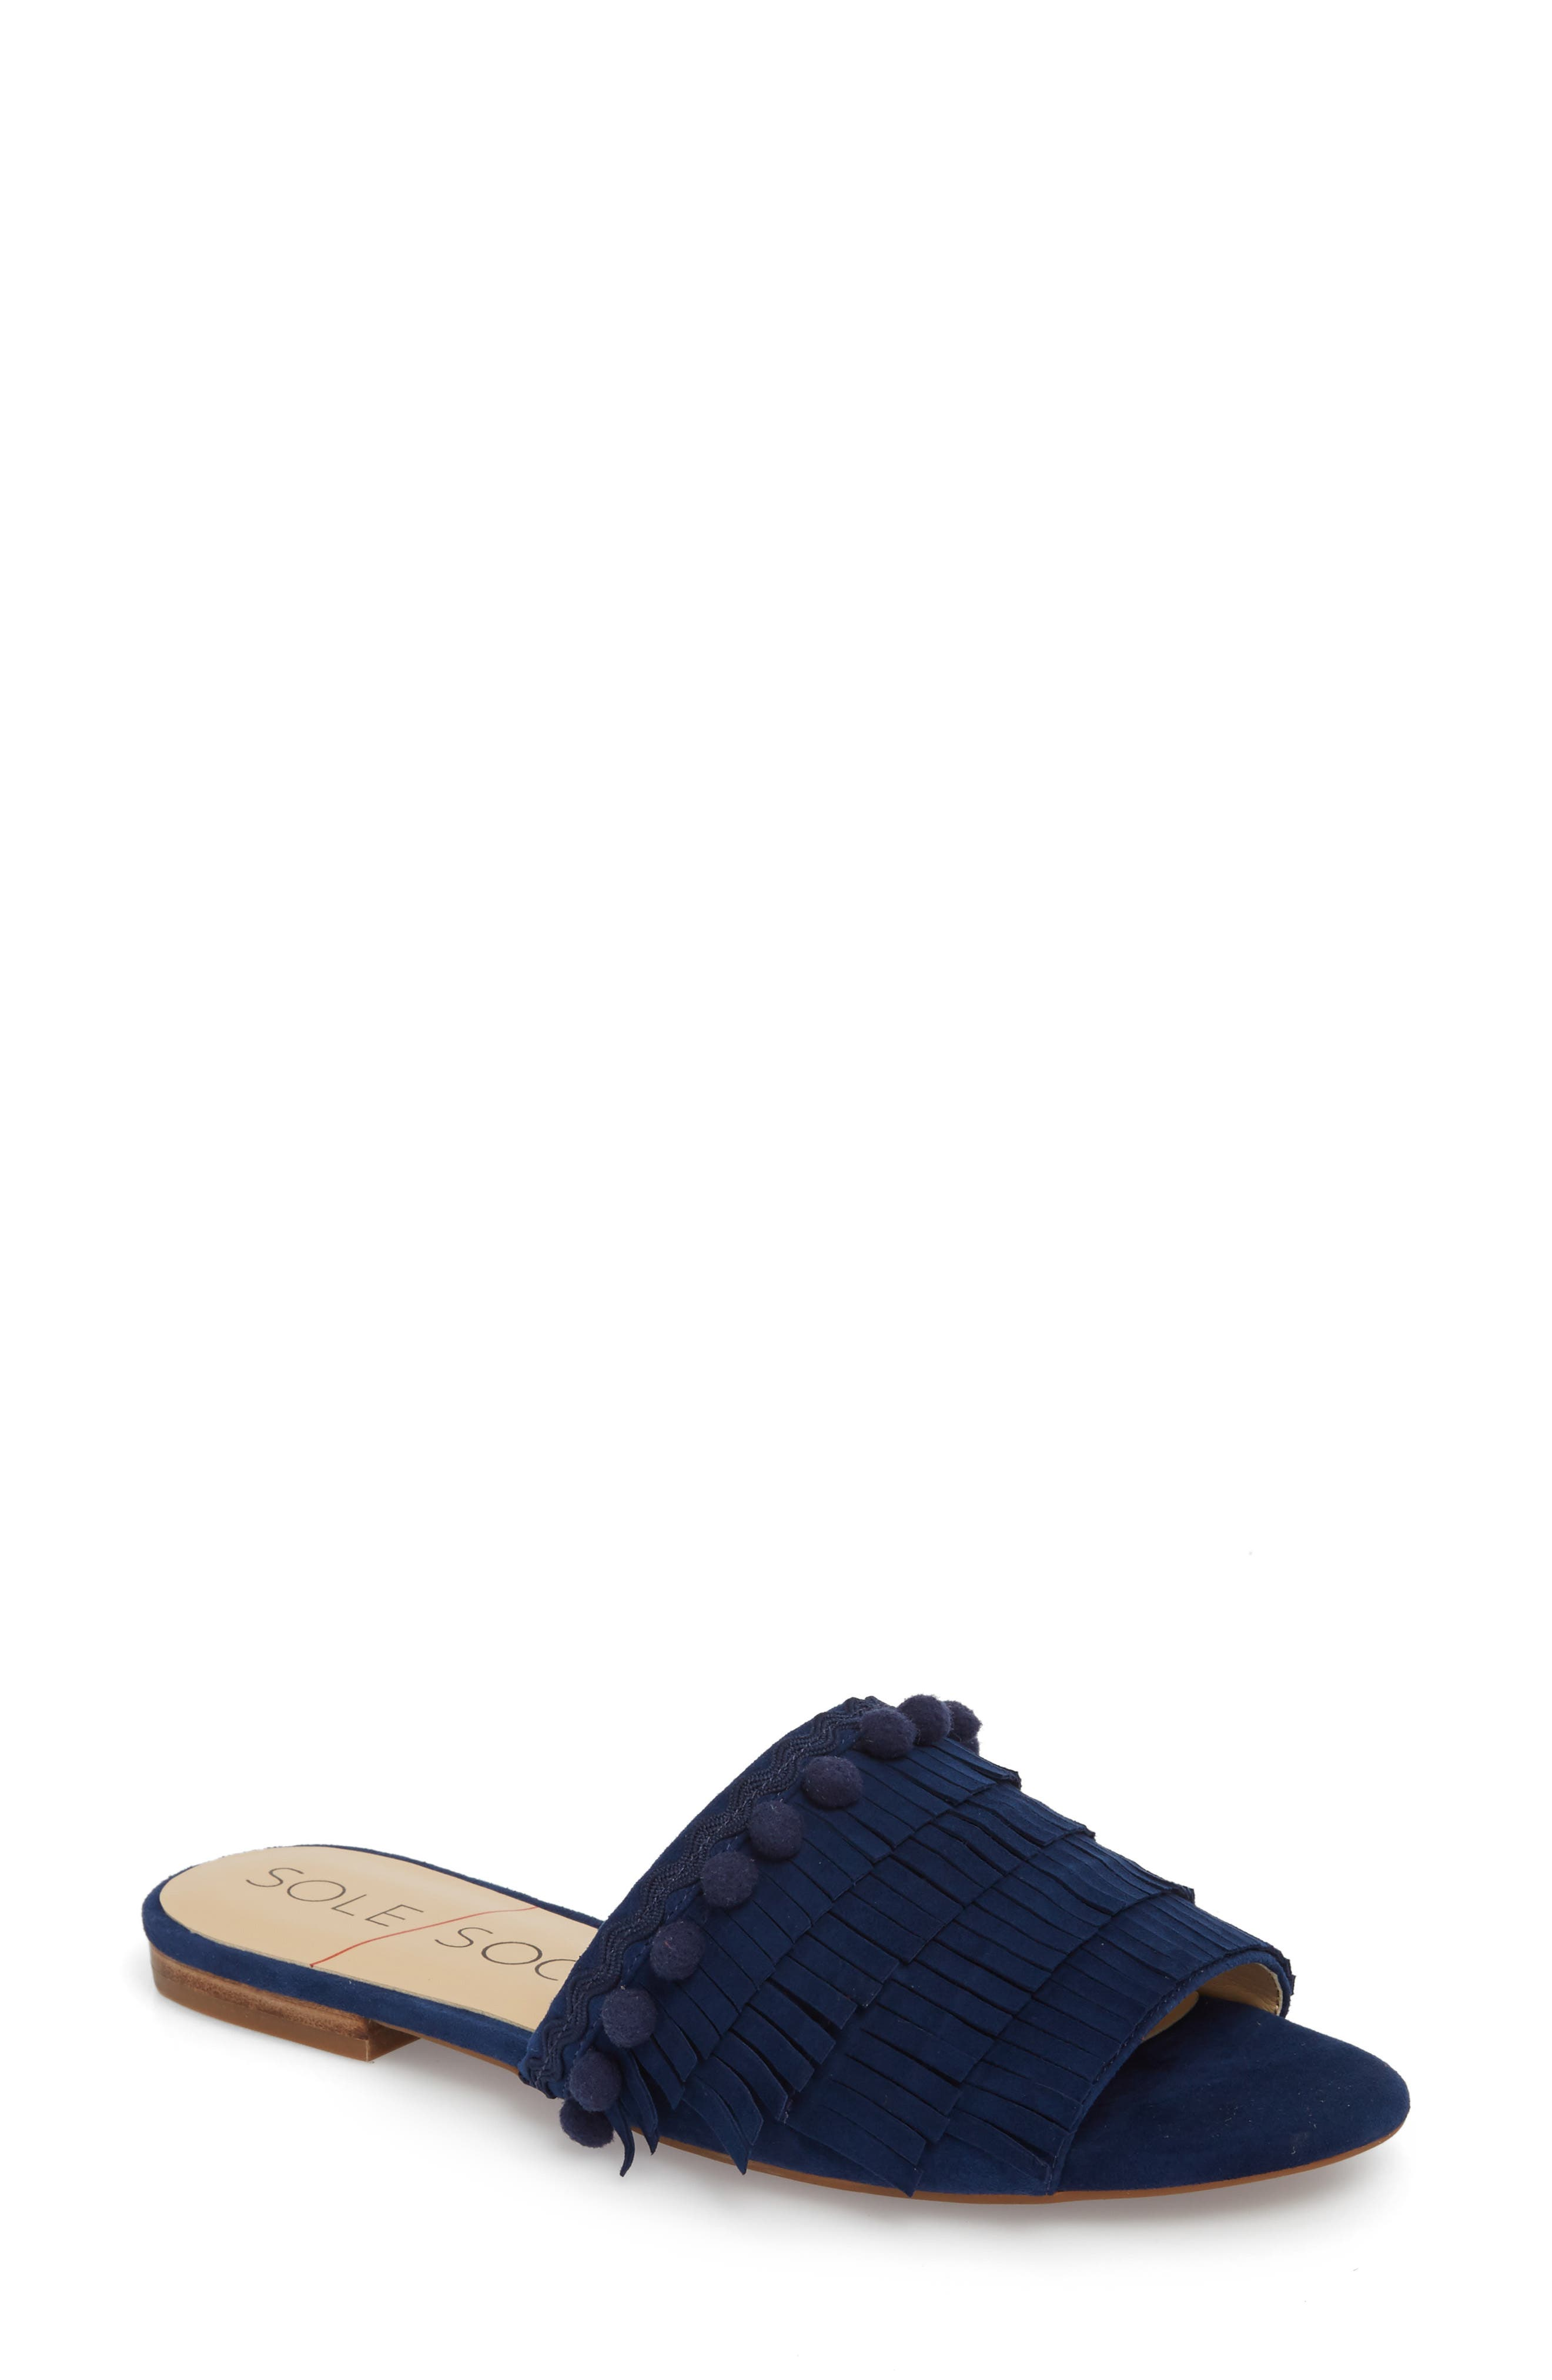 Malina Mule,                         Main,                         color, NAVY SUEDE